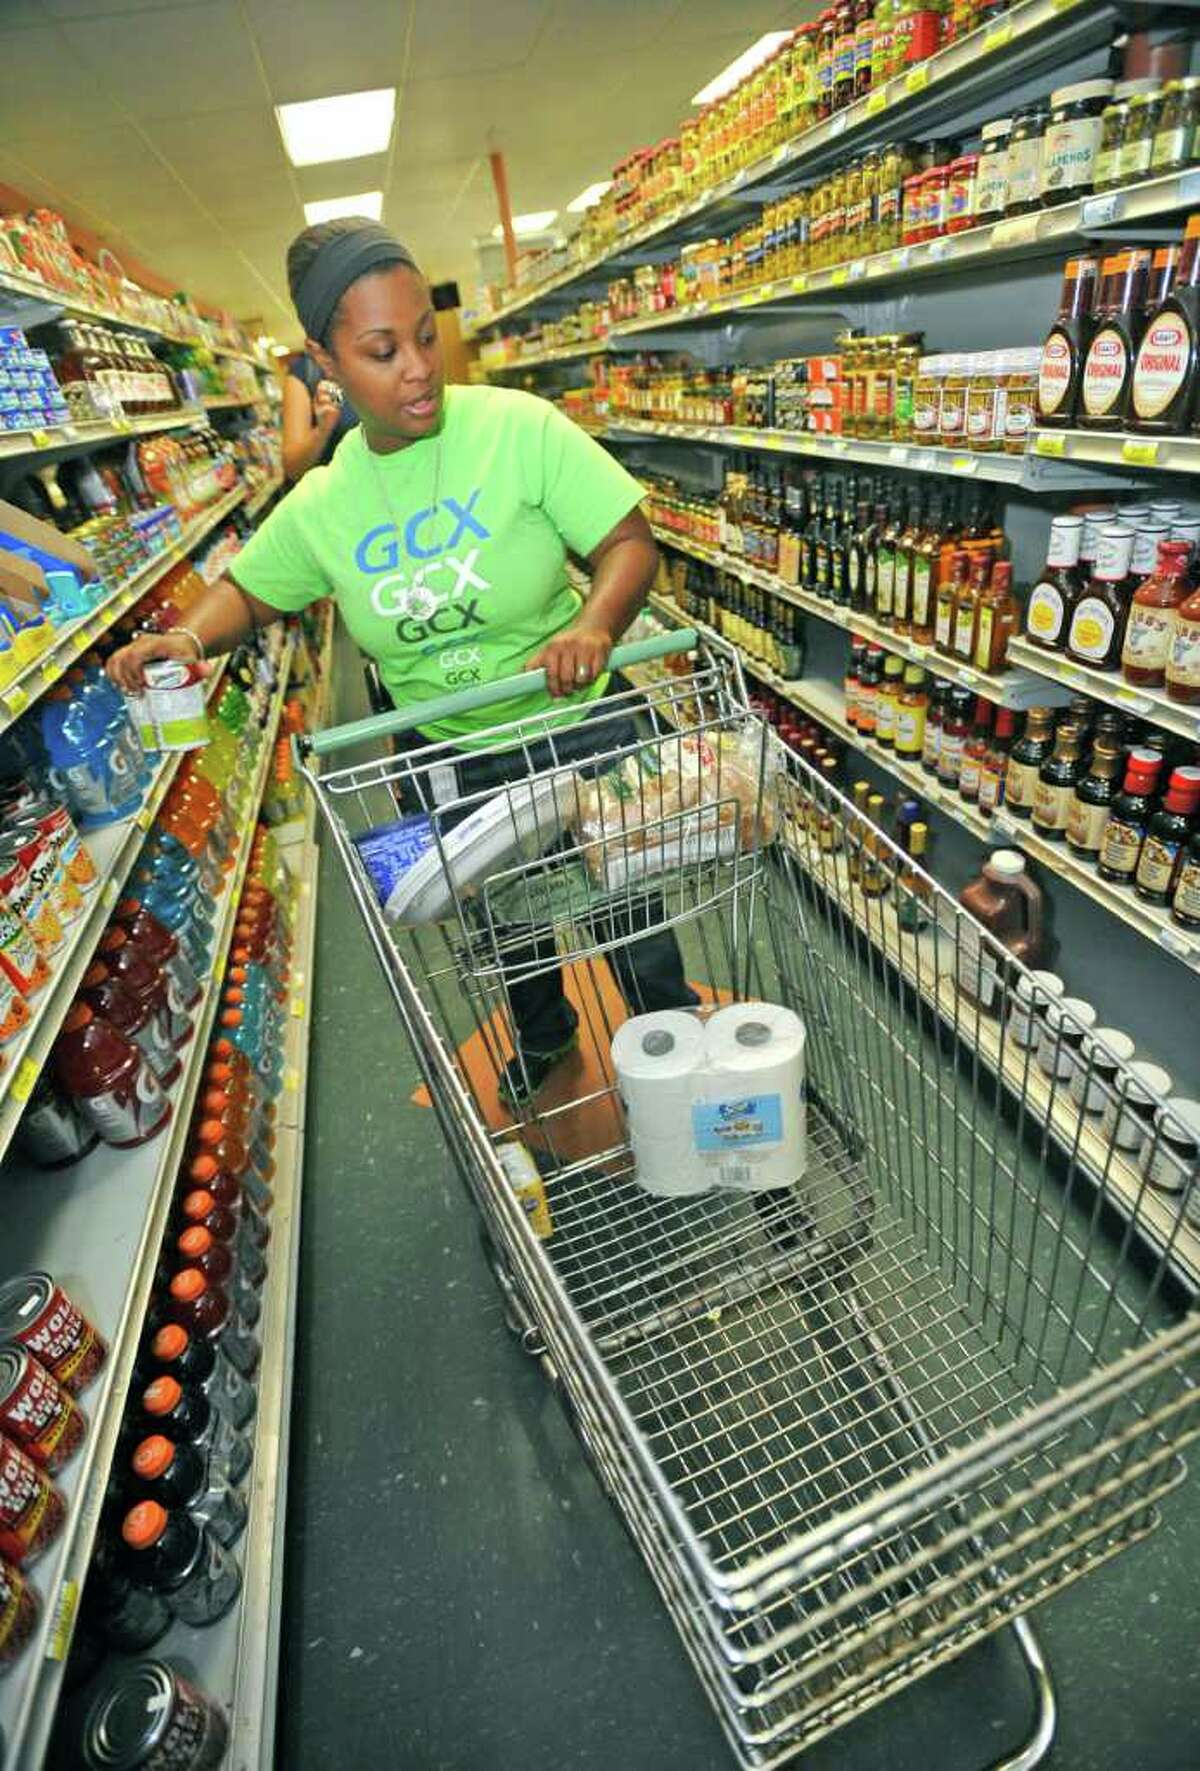 Jevonne Pollard, owner of Grocery Cart Xpress, heads down an aisle at Jack's Pak-It Monday morning. Grocery Cart Xpress, is a fairly new service in Southeast Texas that does your grocery and pet store shopping for you. The Shopper undergoes training specific to quality control in fresh produce and foods. Dave Ryan/The Enterprise